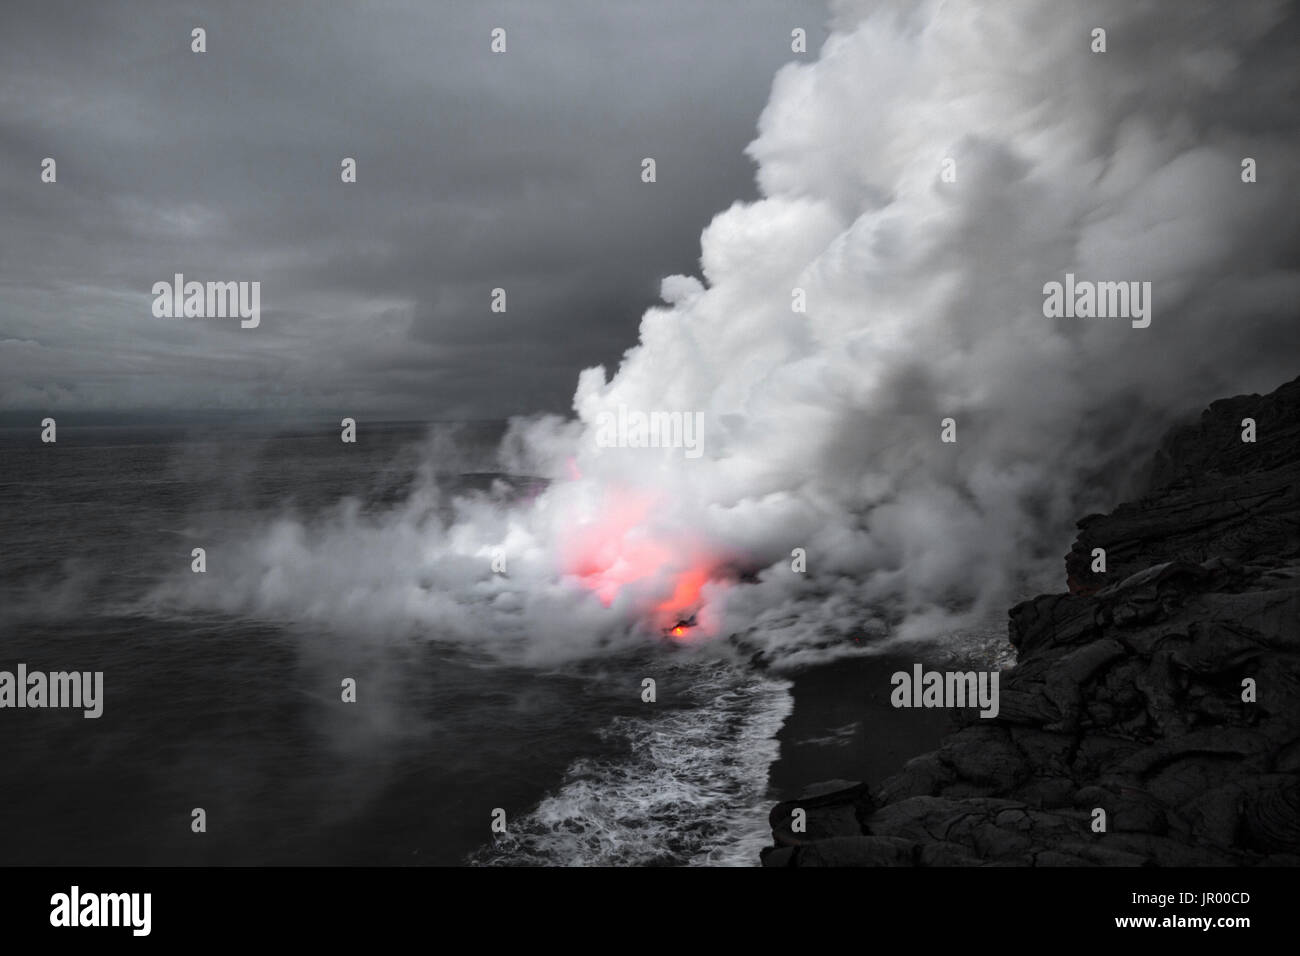 HI00288-00...HAWAI'I - Lava entering the ocean from the Pu'u O'o lava flow in Hawai'i Volcanoes National Park on the island of Hawai'i. - Stock Image